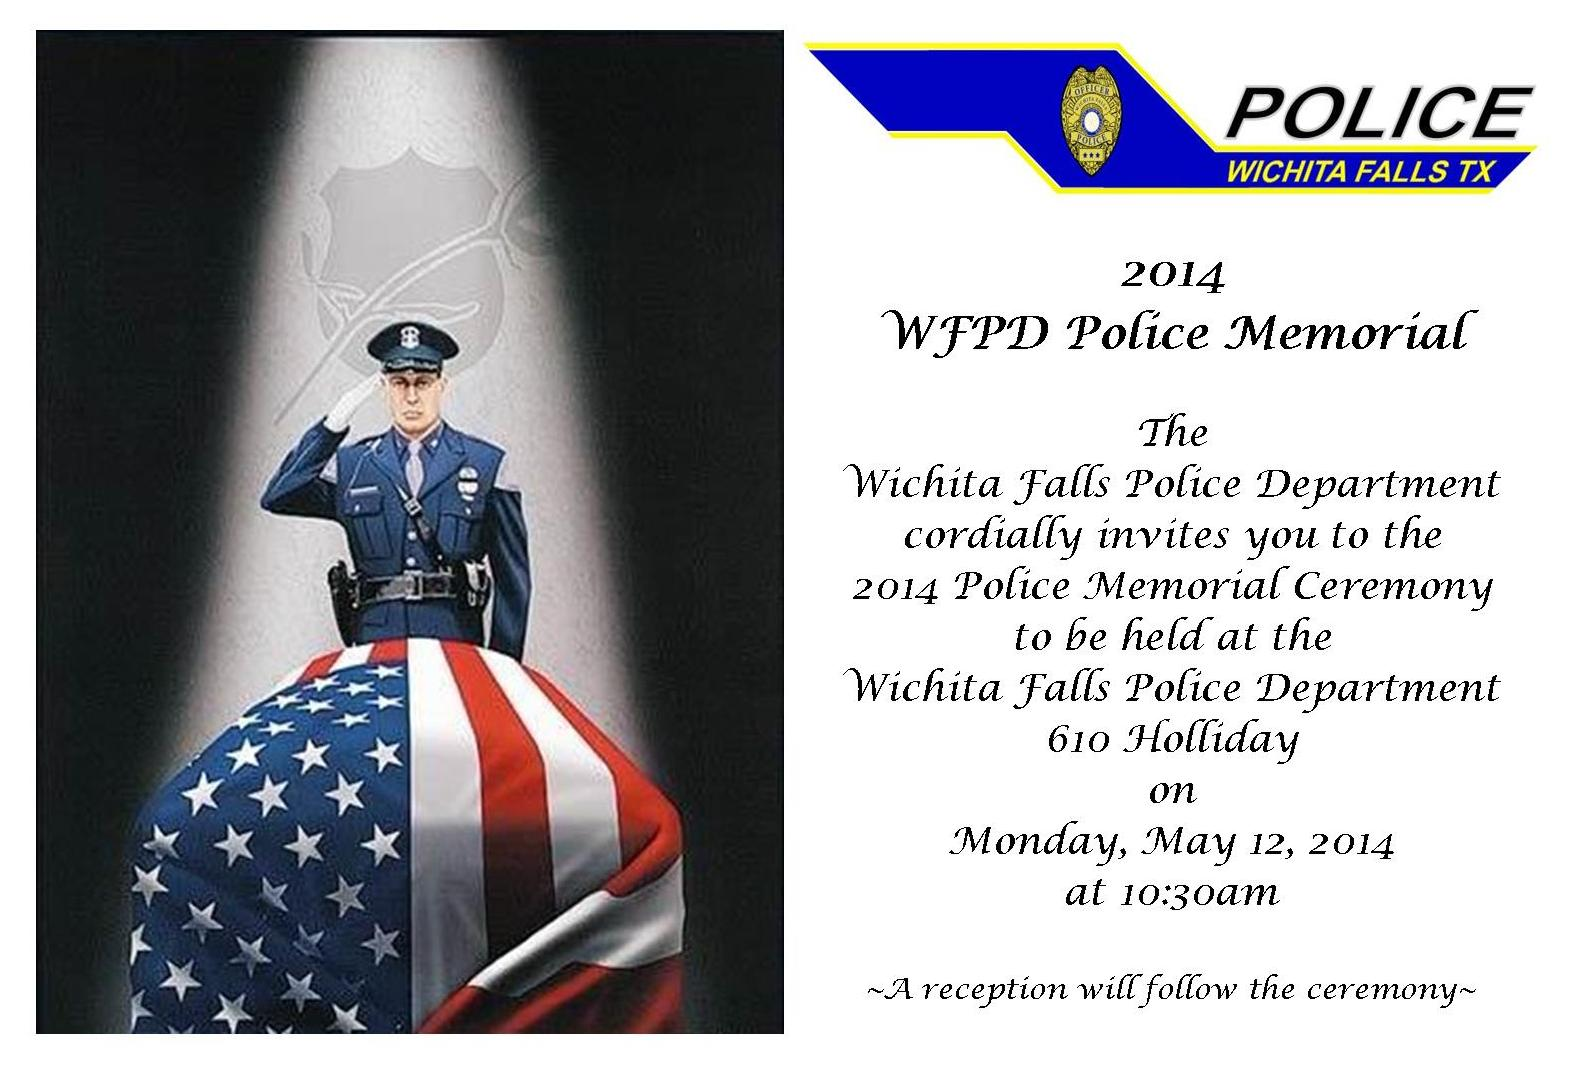 Mark your calendar for the 2014 Police Memorial Service ...